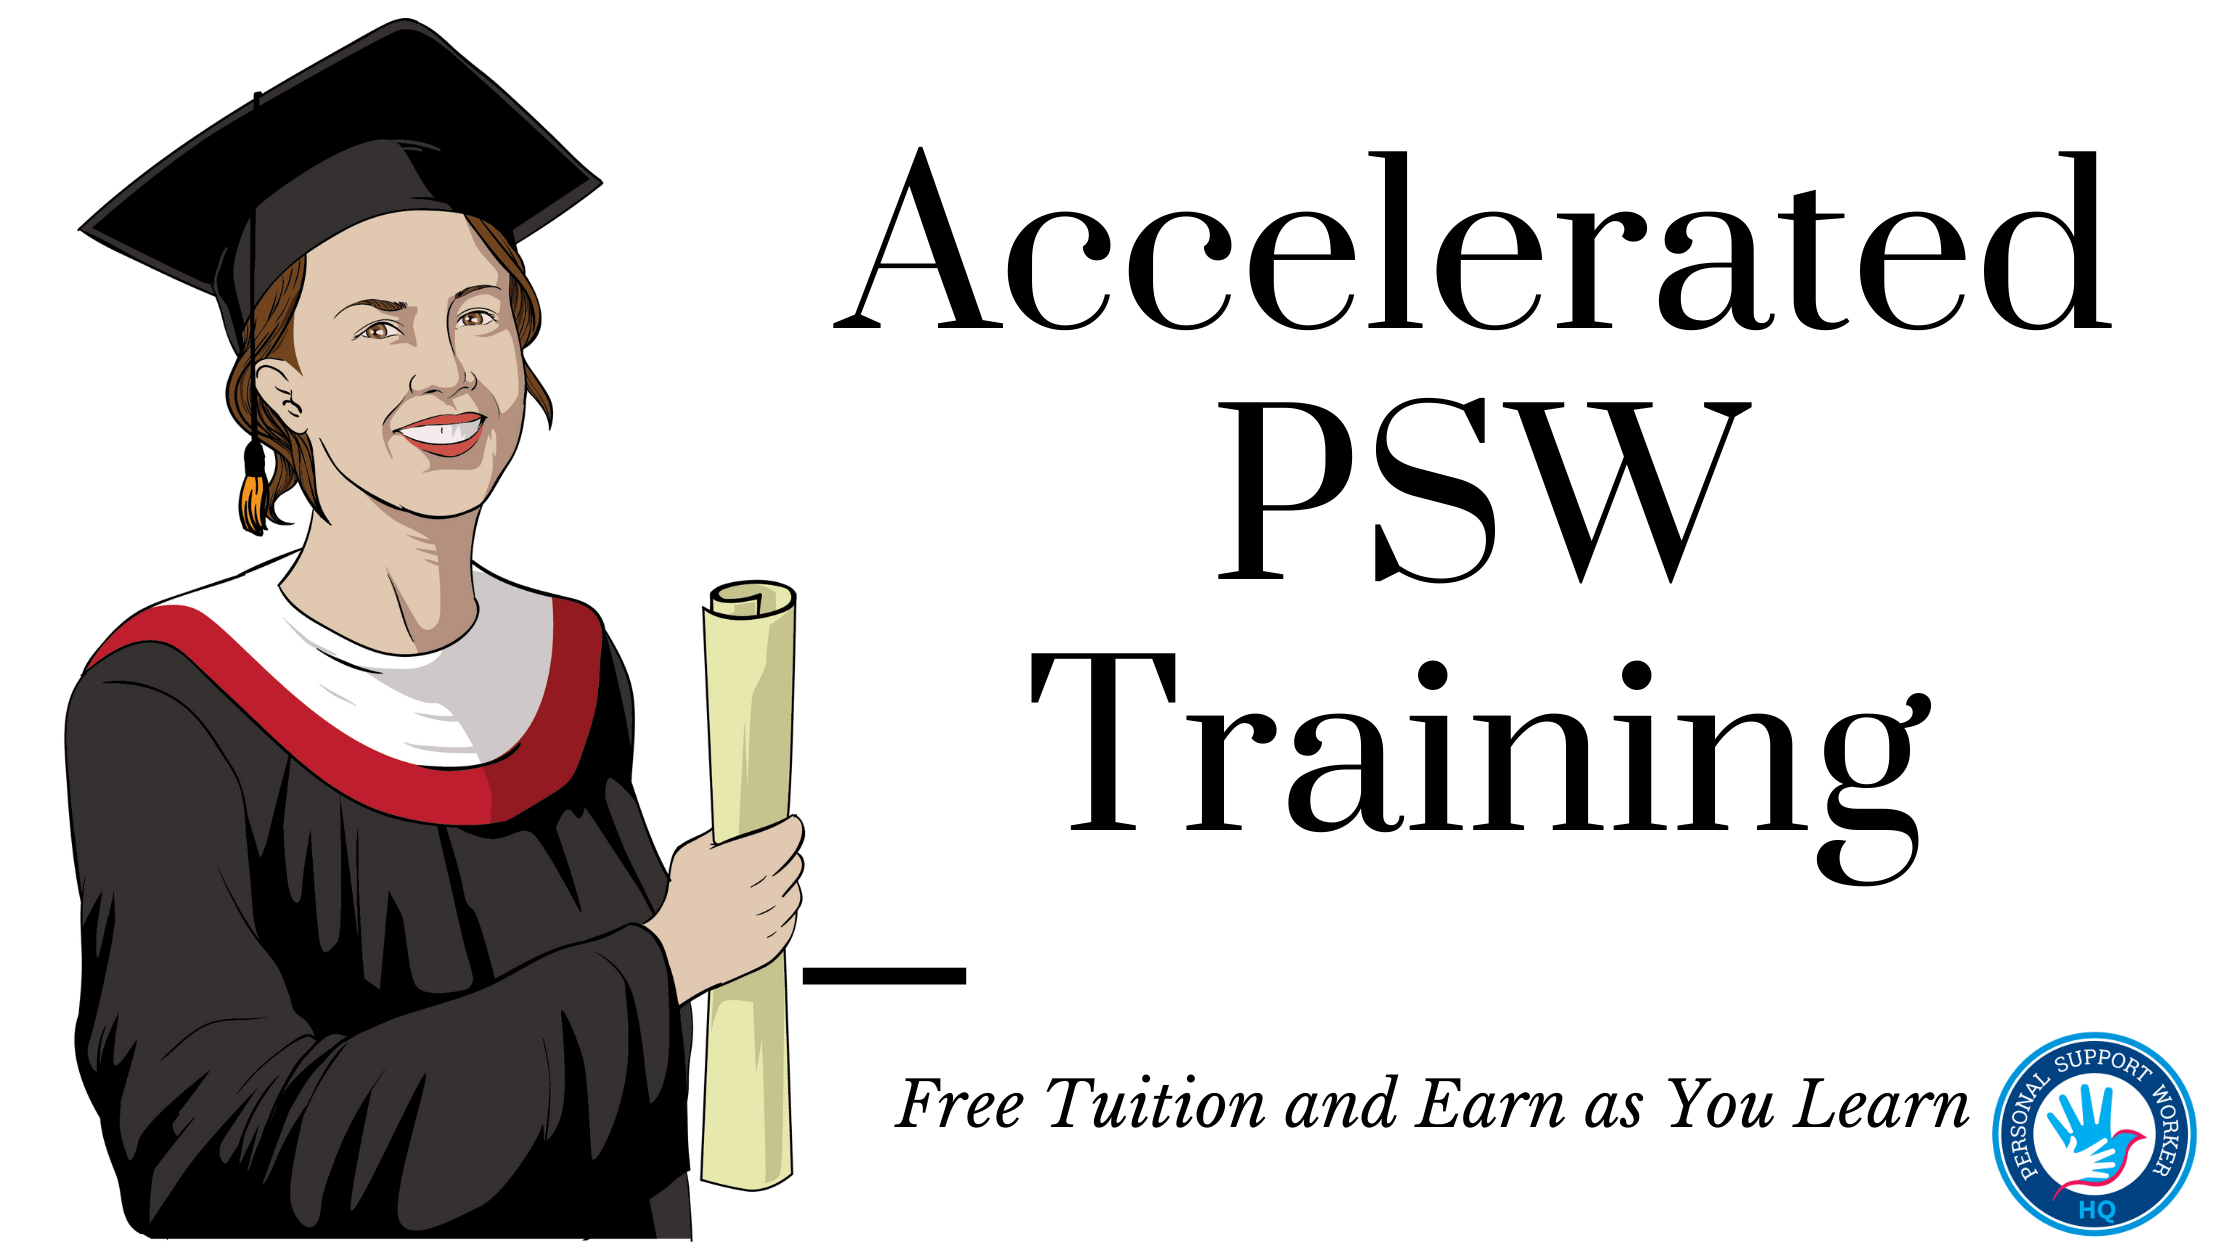 Fully government funded PSW training program that lets you become a Personal Support Worker in 6 months.